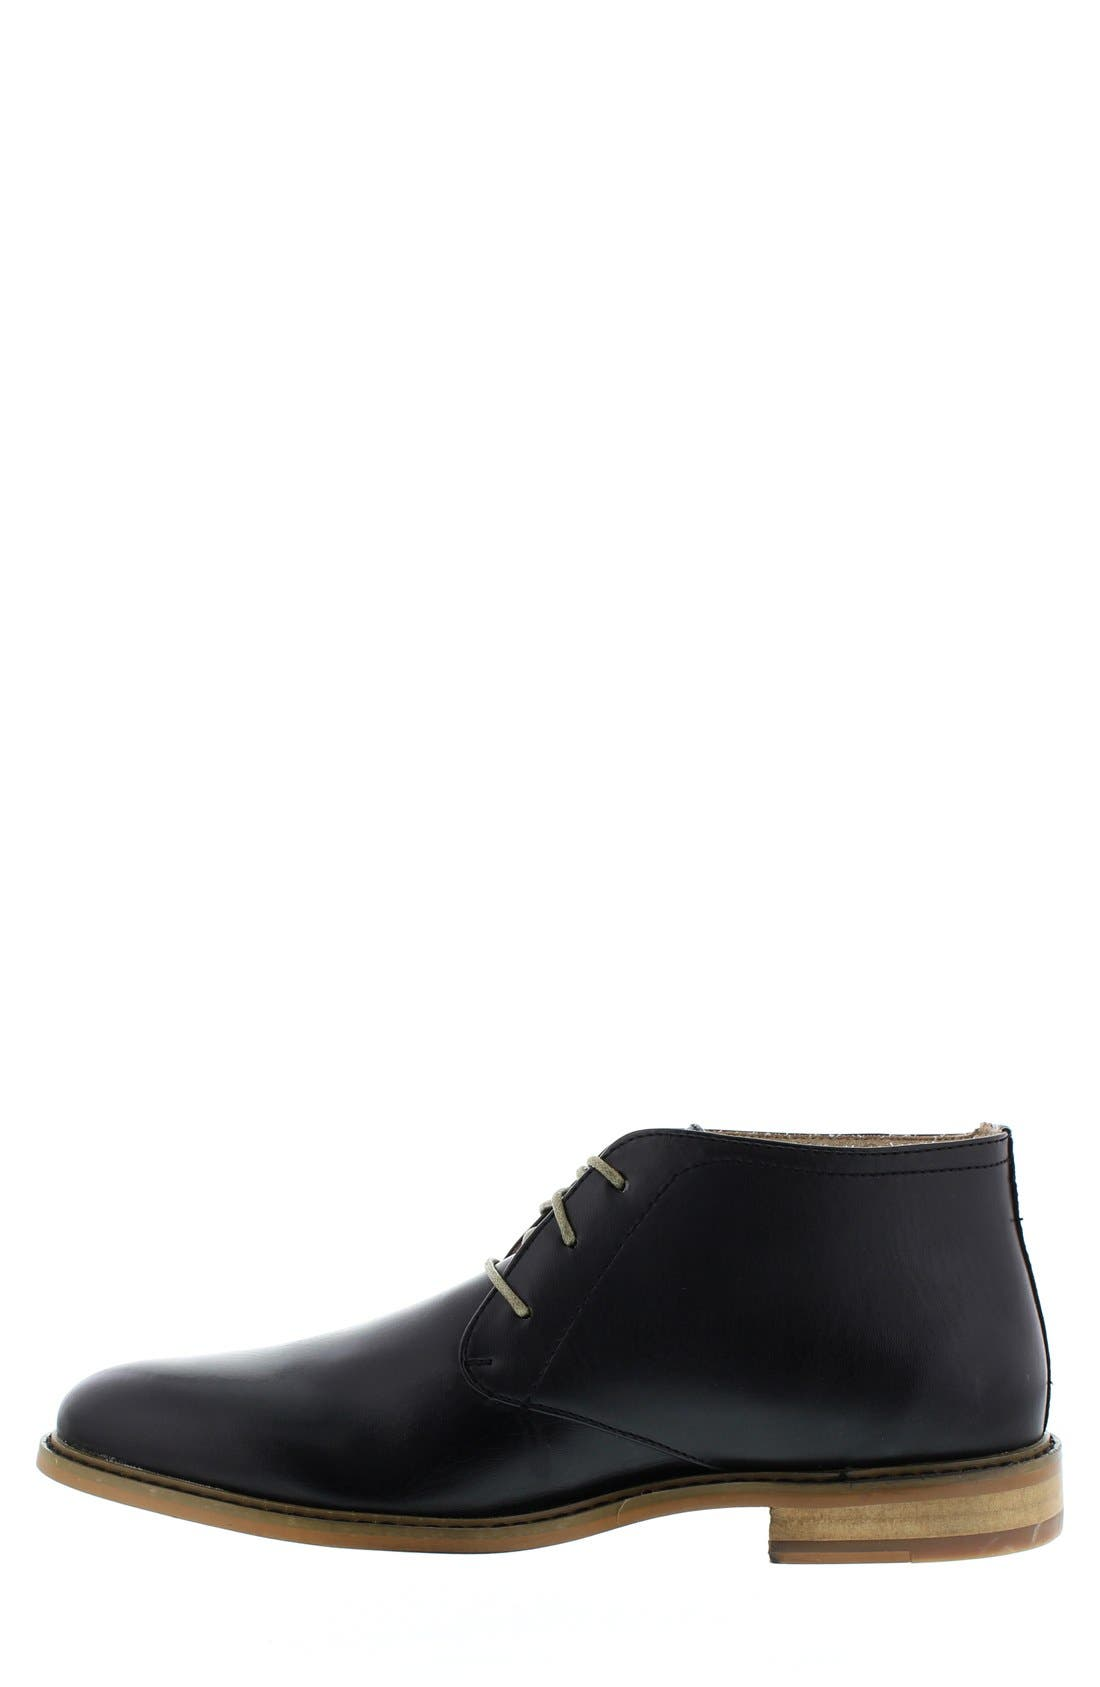 DEER STAGS,                             'Seattle' Leather Chukka Boot,                             Alternate thumbnail 2, color,                             001